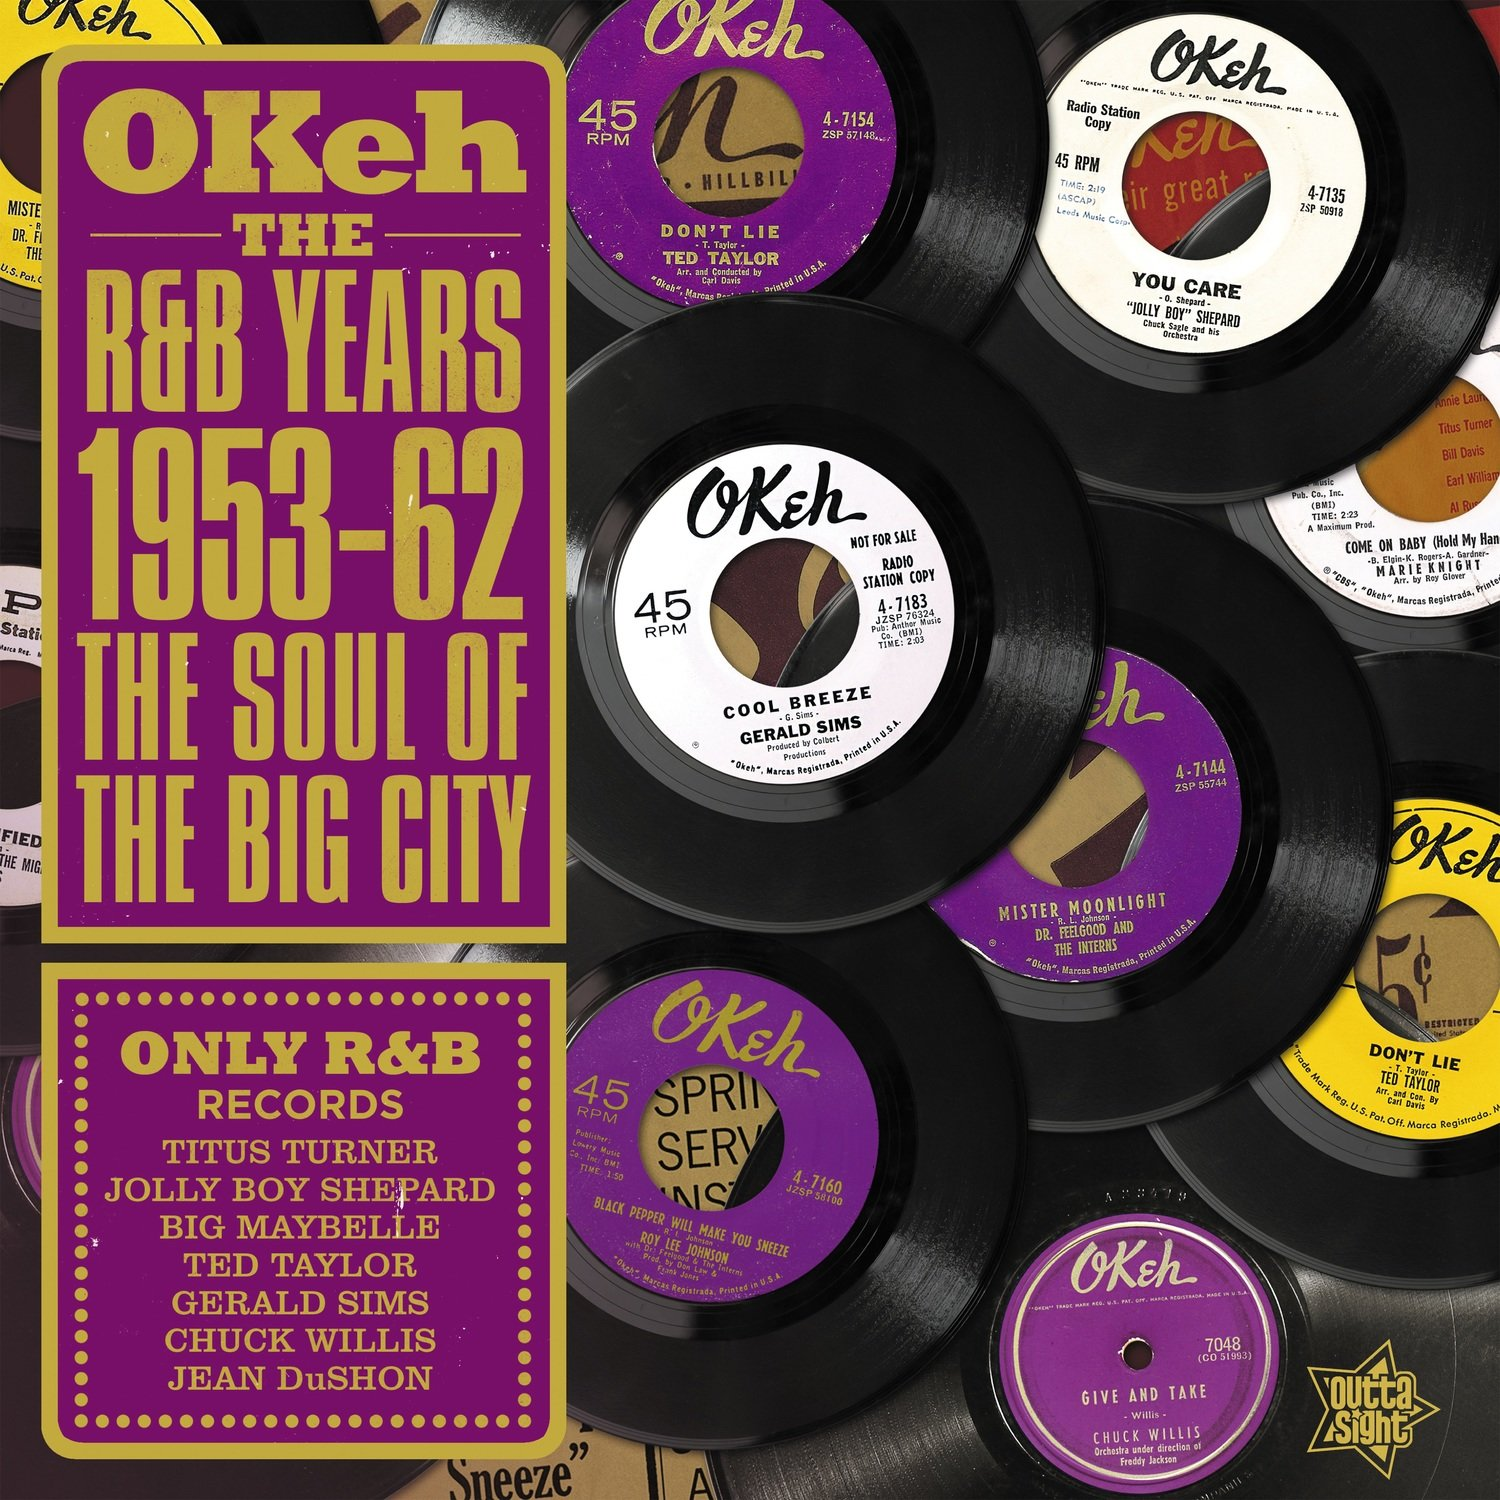 OKEH The R&B Years 1953-1962